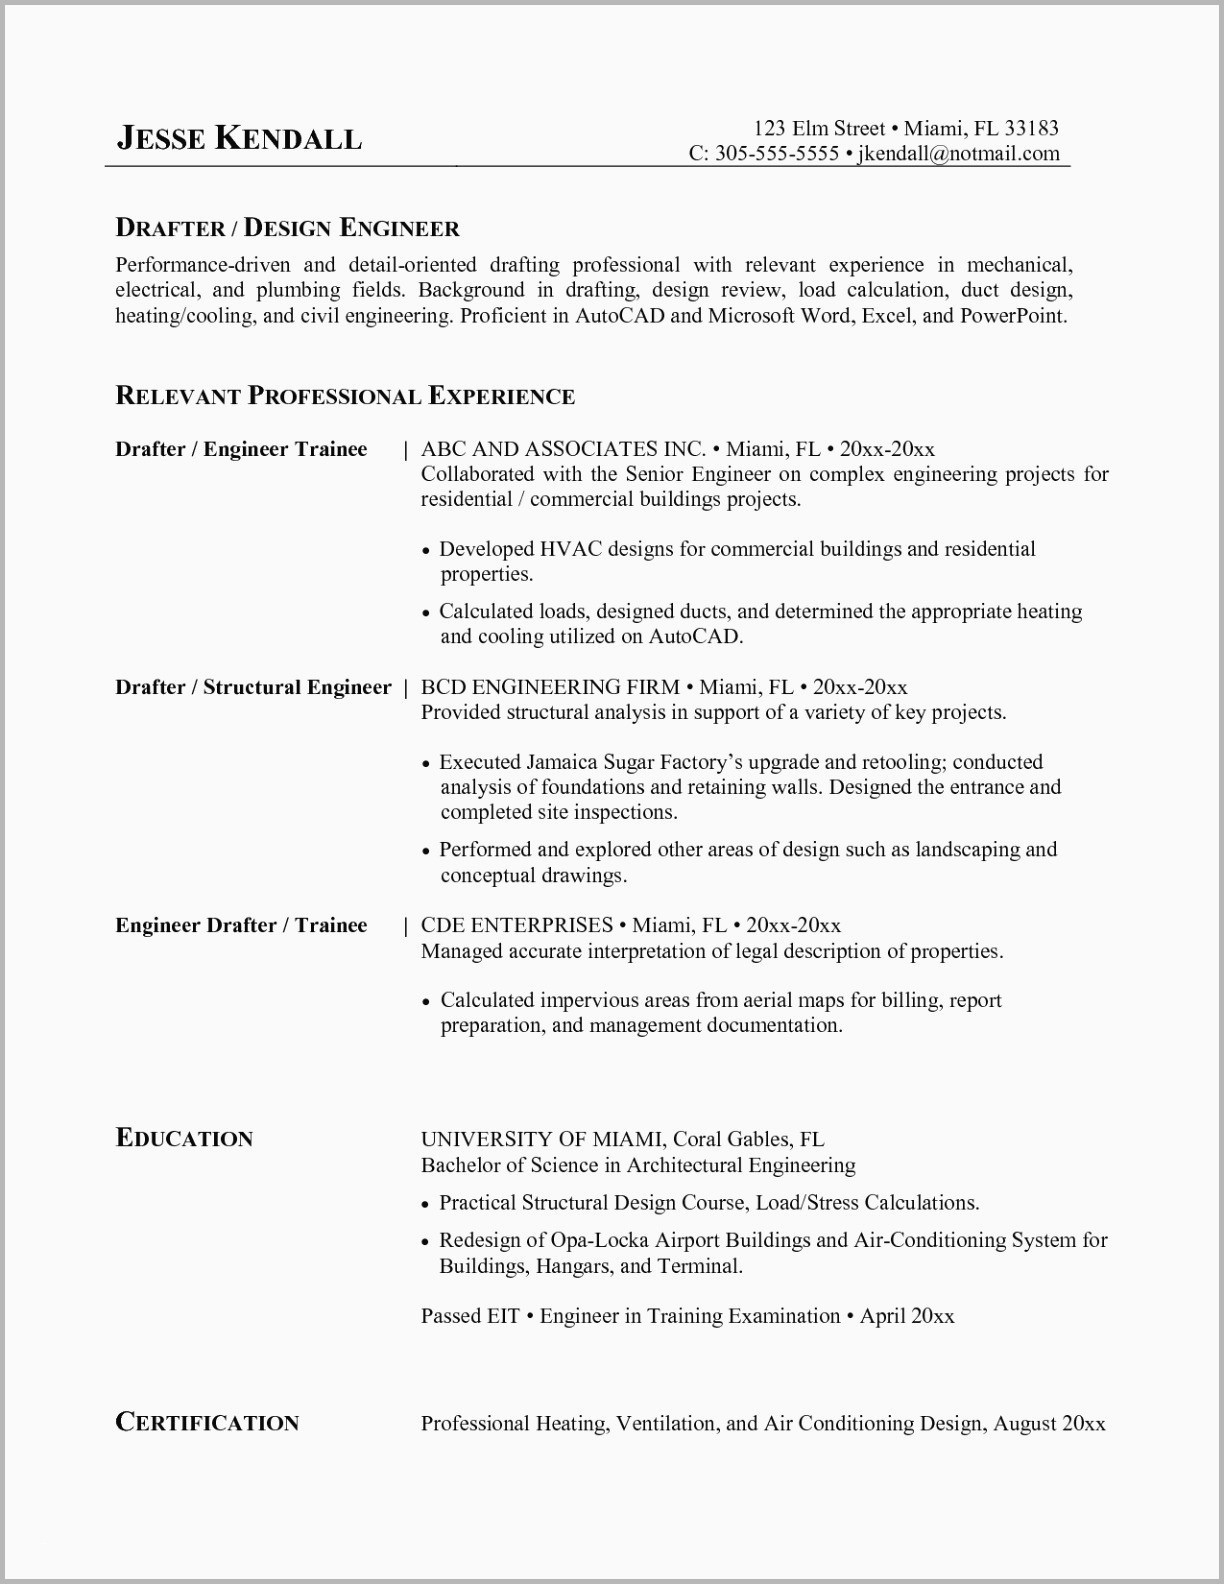 Electrician Resume Template Microsoft Word - Journeyman Electrician Resume Beautiful Template